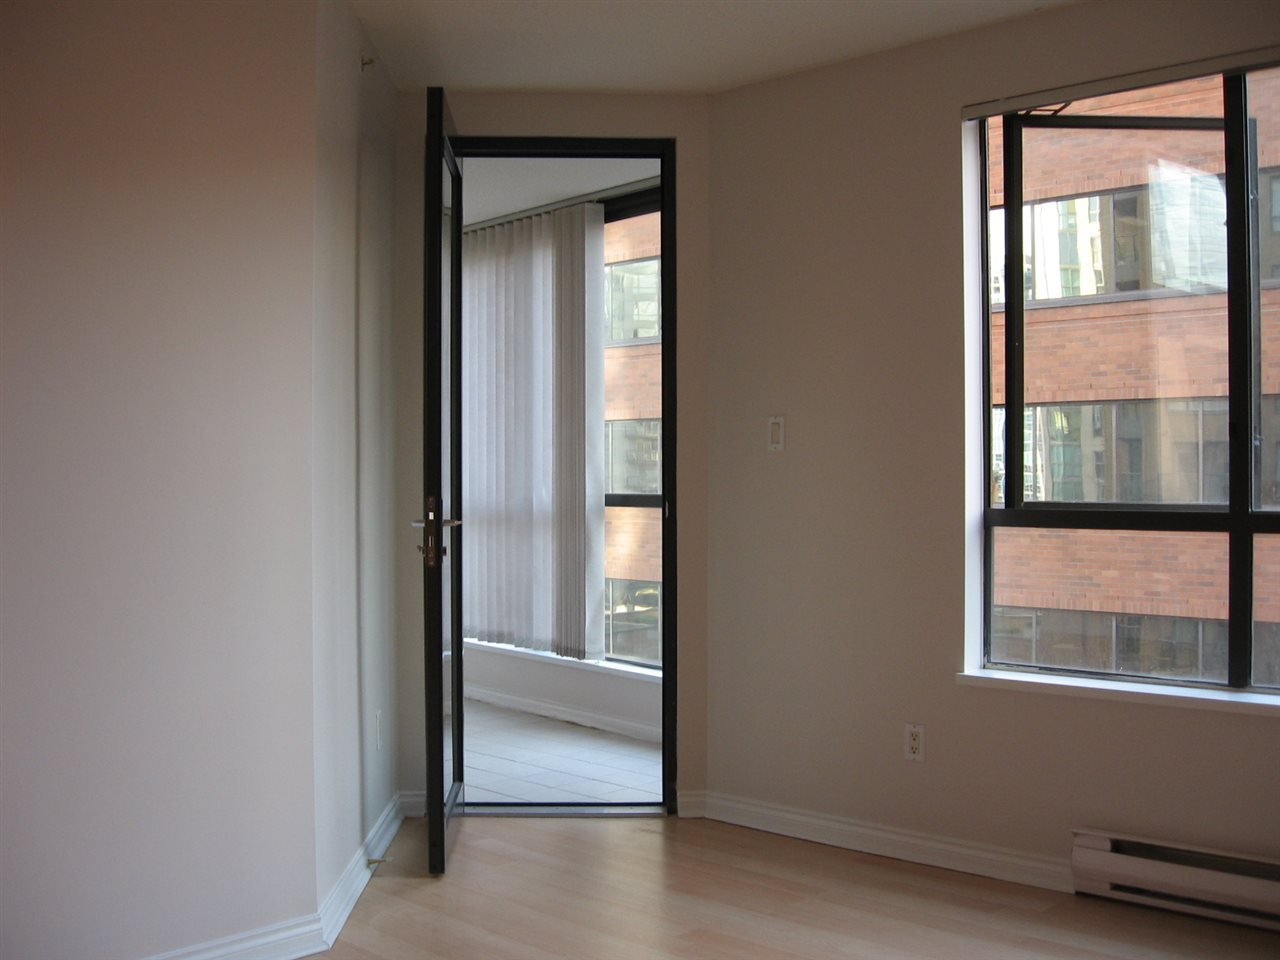 Photo 14: Photos: 801-1189 Howe Street in Vancouver: Yaletown Condo for rent (Downtown Vancouver)